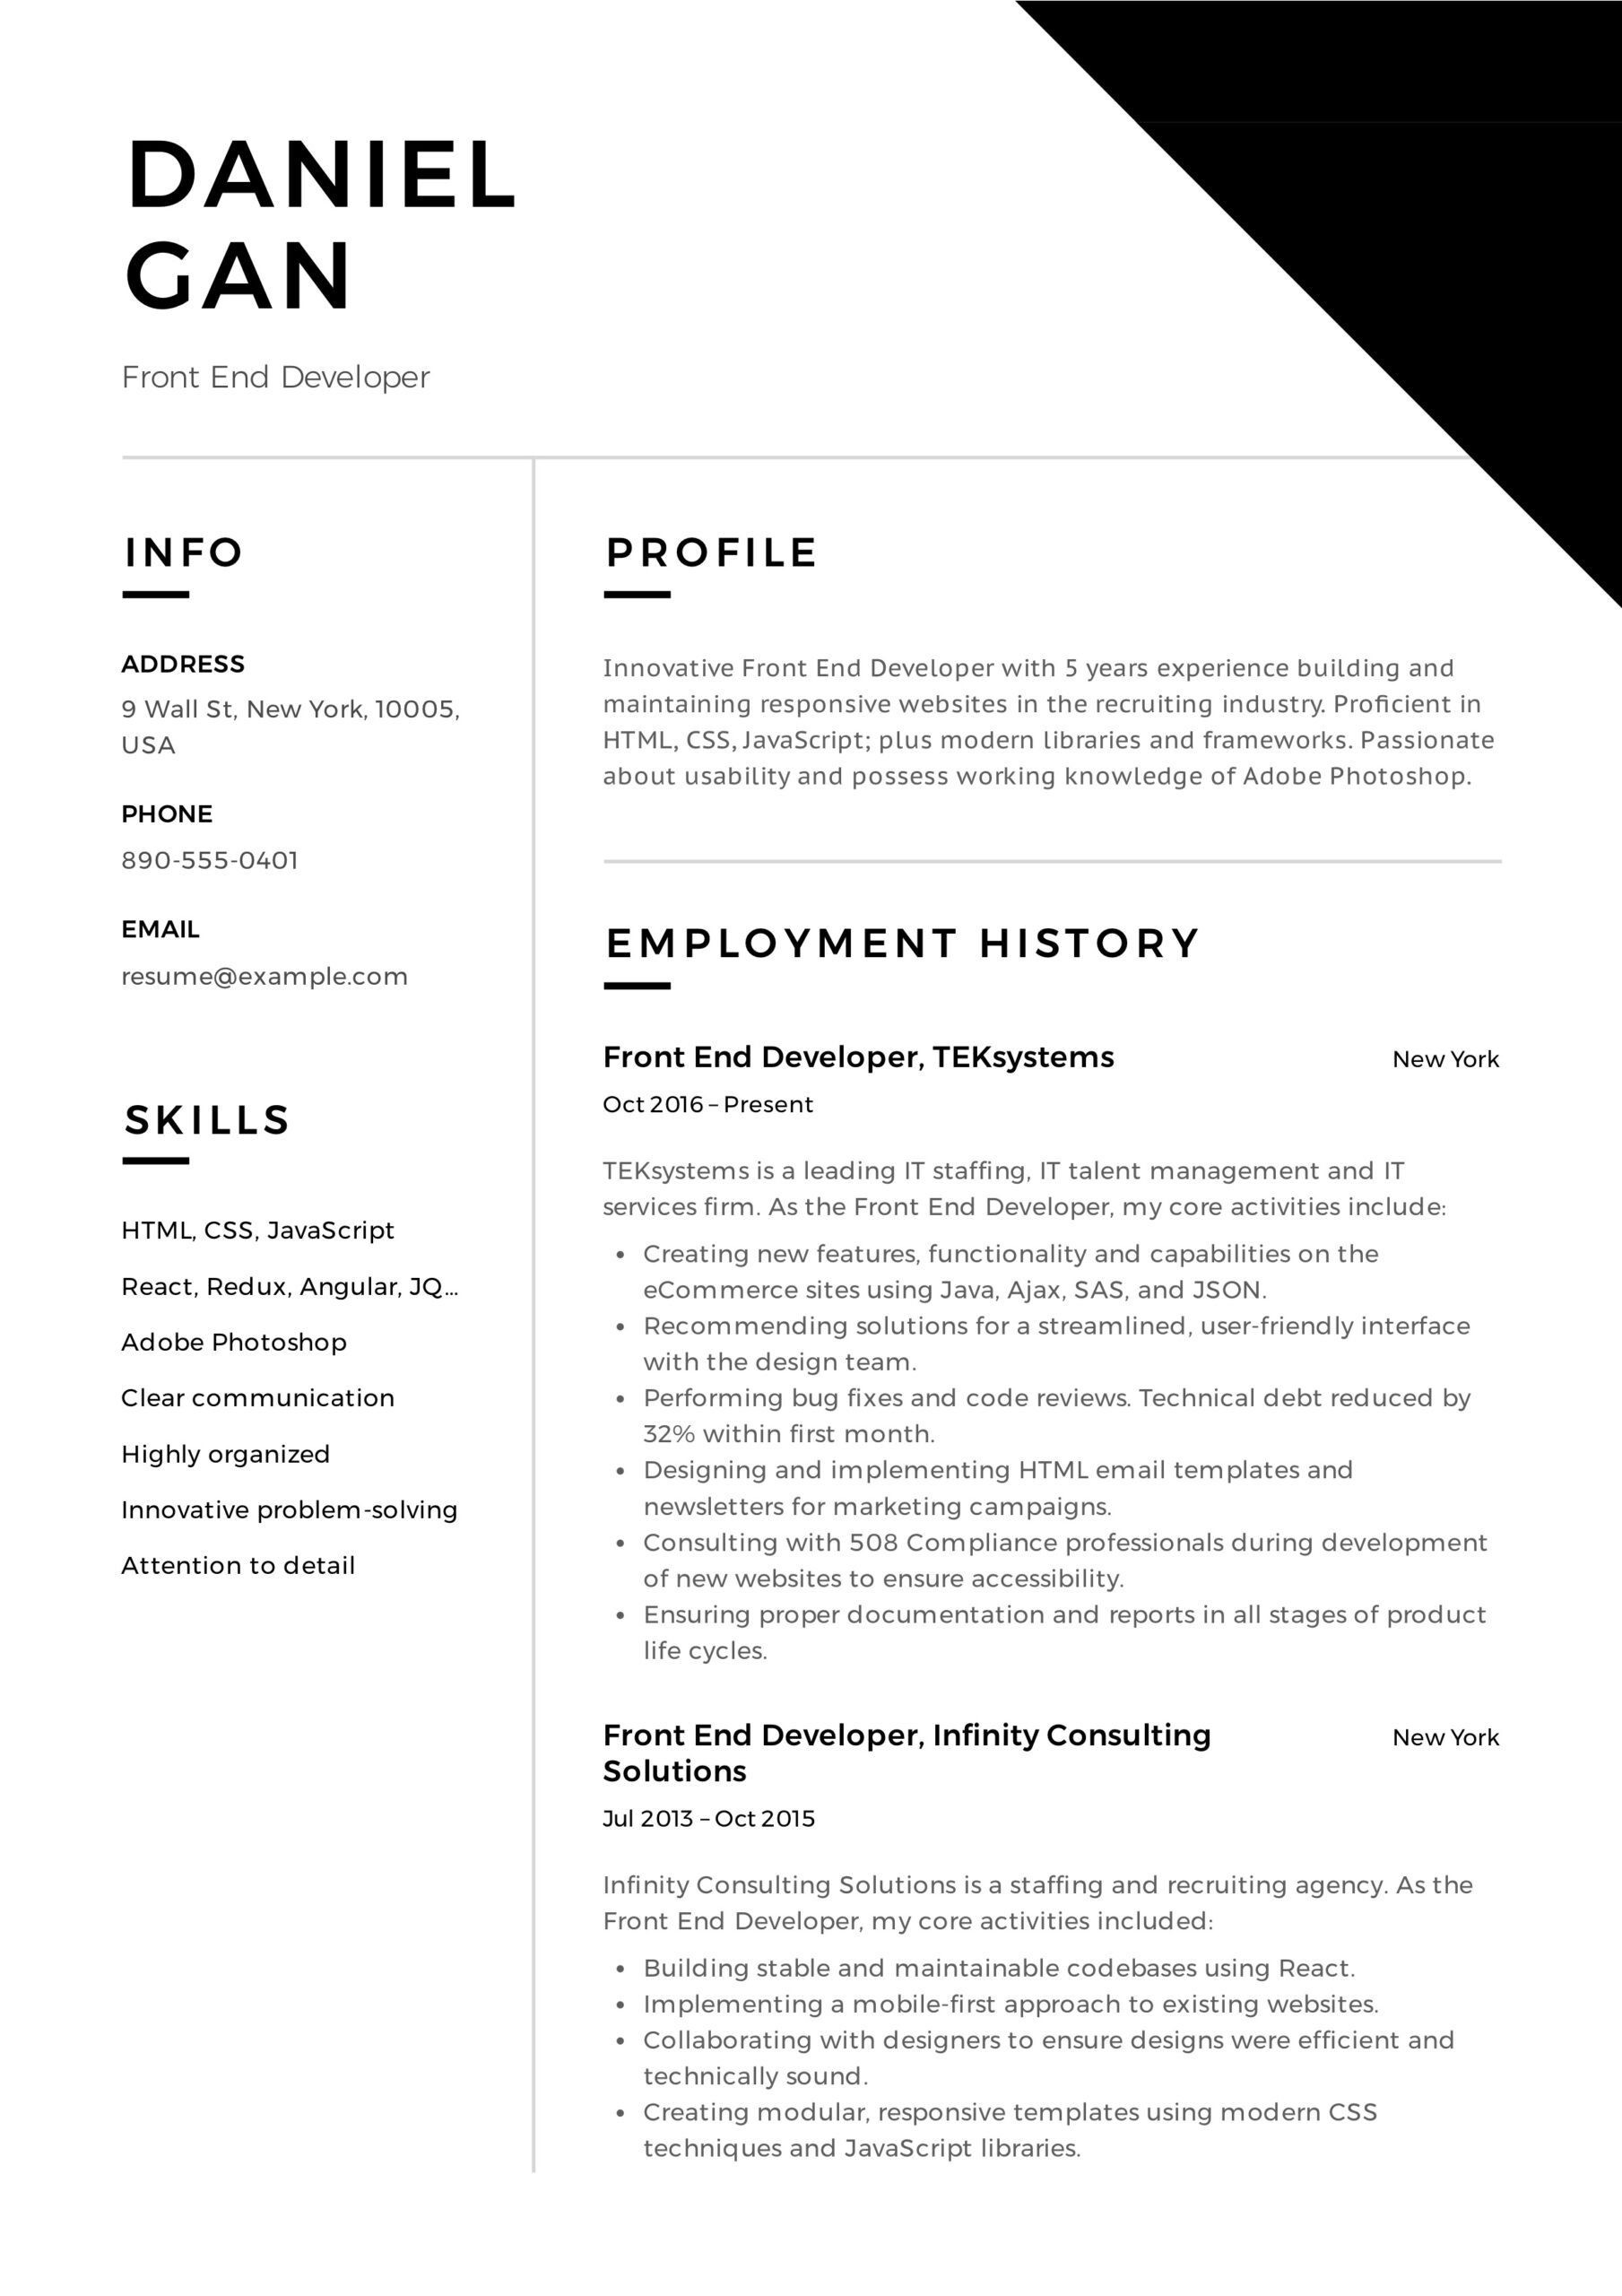 front end developer resume examples guide pdf example daniel gan army squad leader and Resume Front End Developer Resume Example